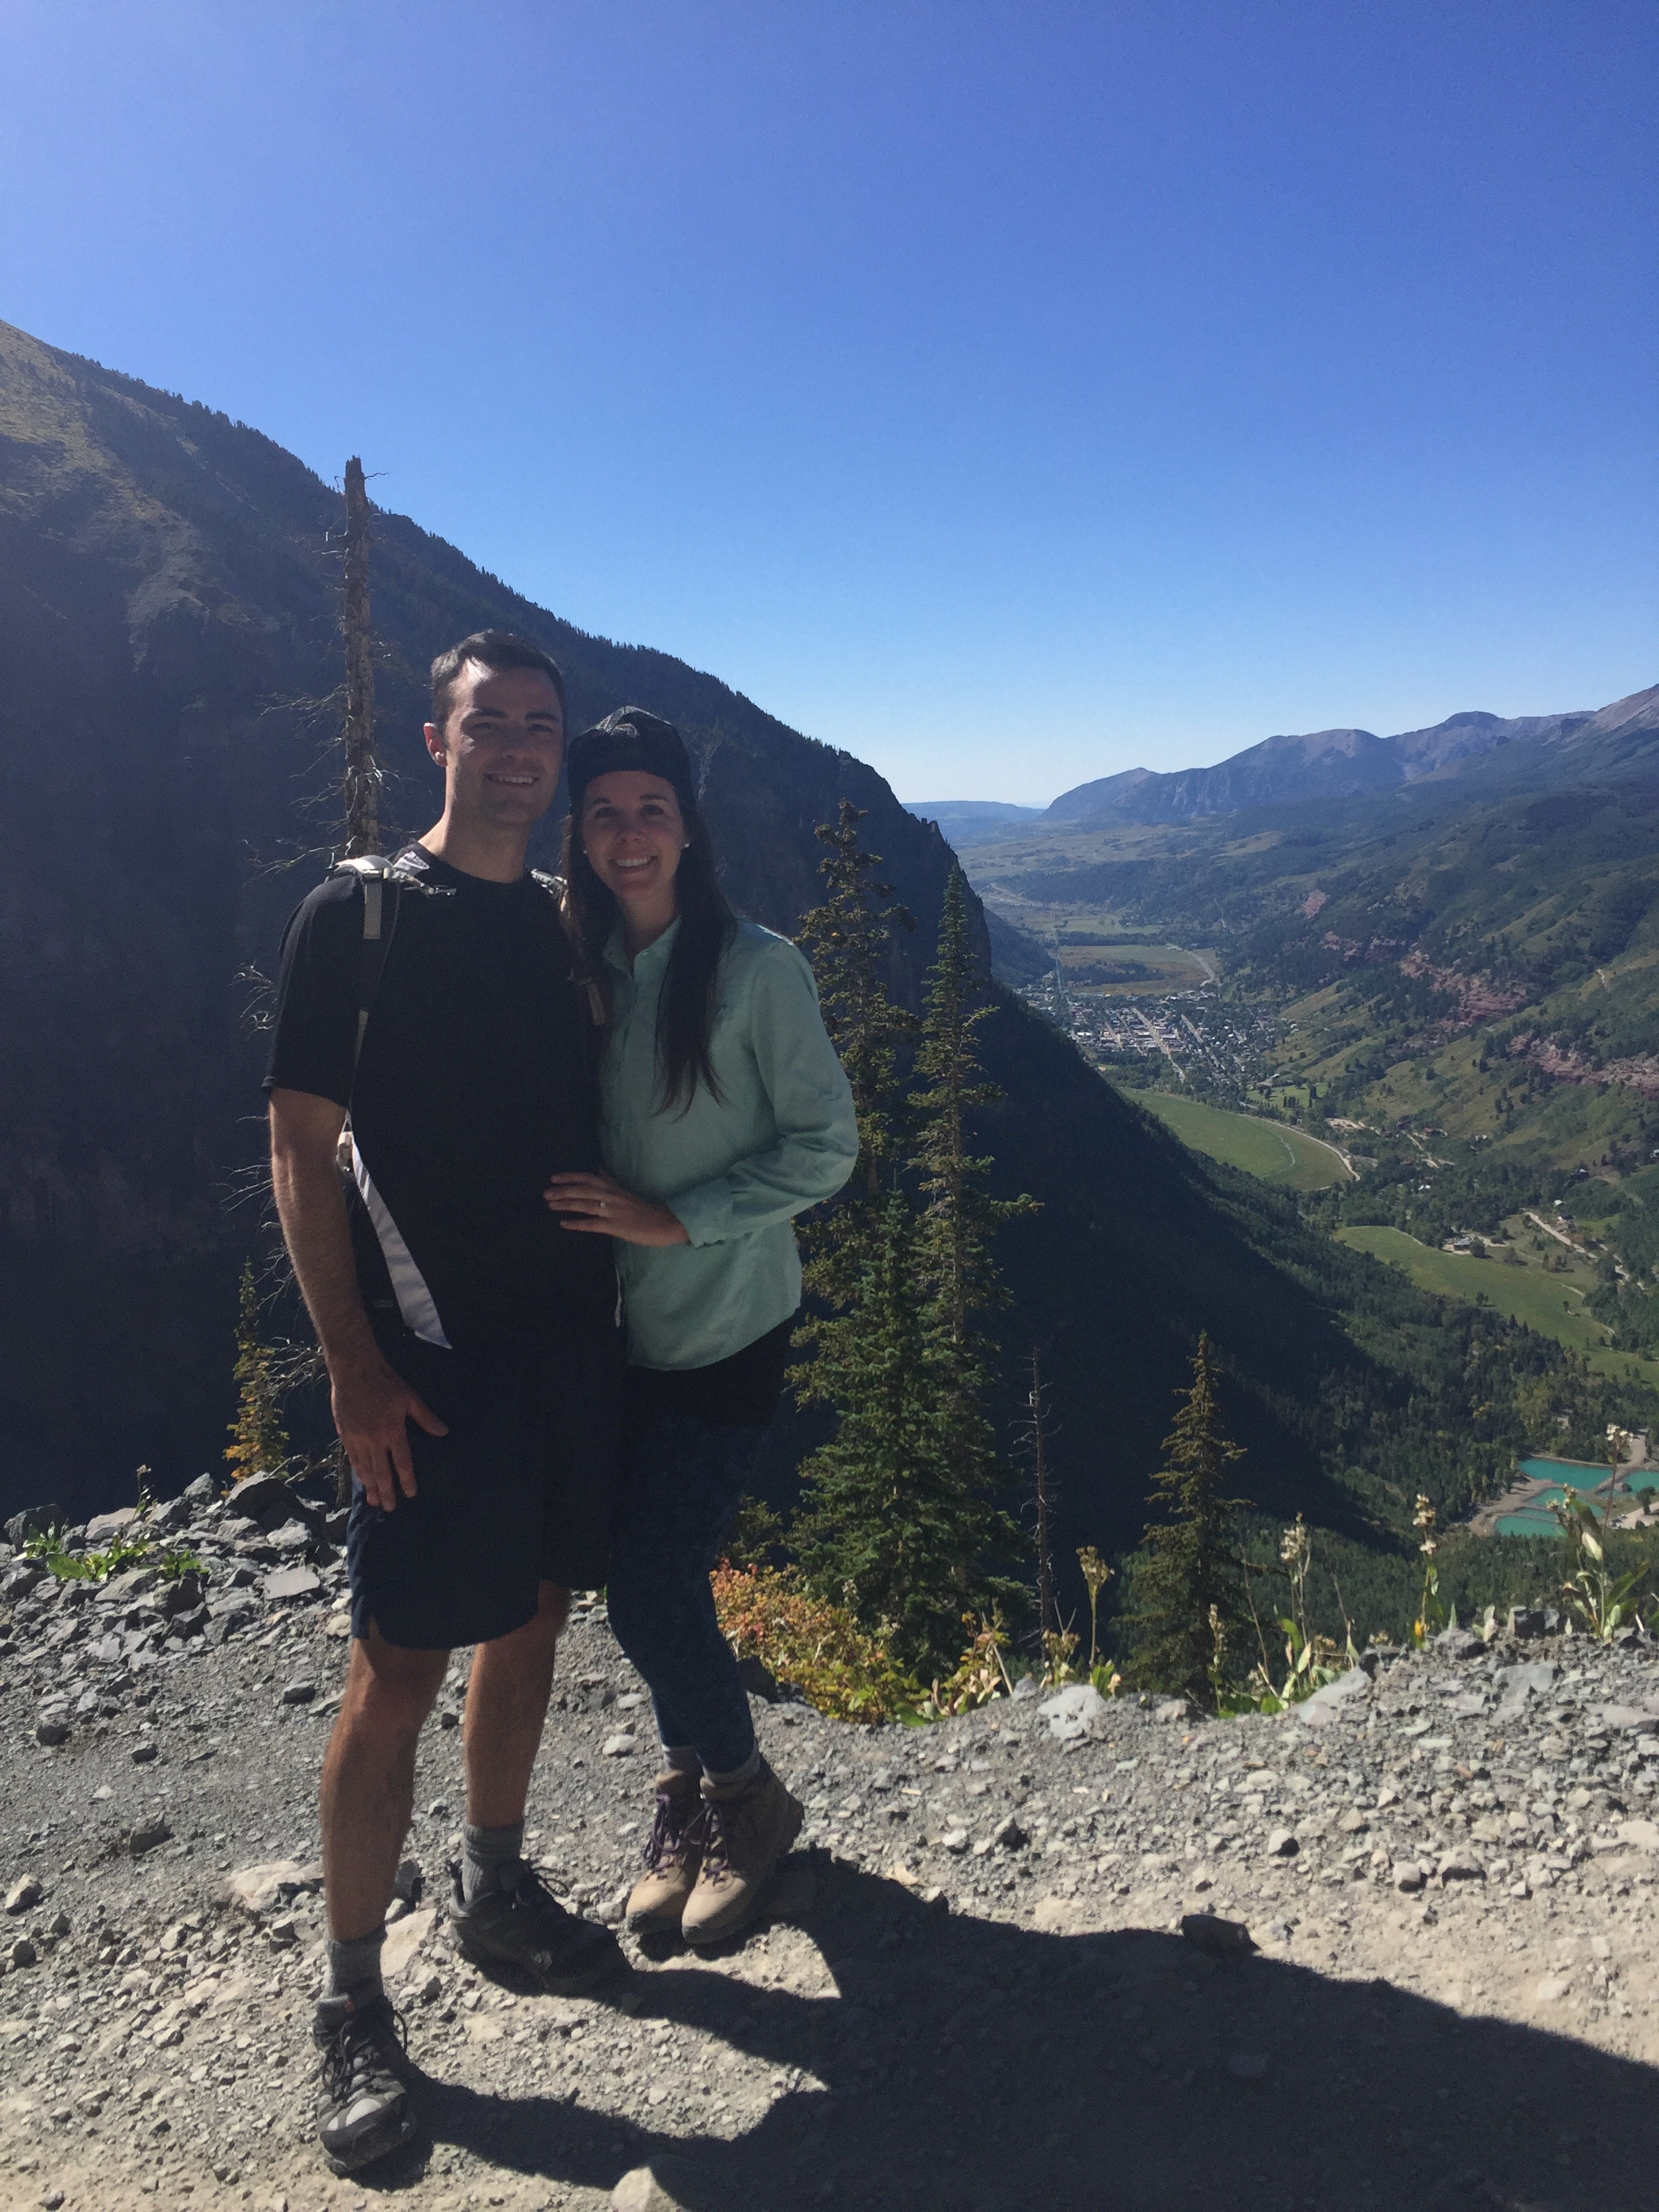 Cameron and Kelly in Telluride